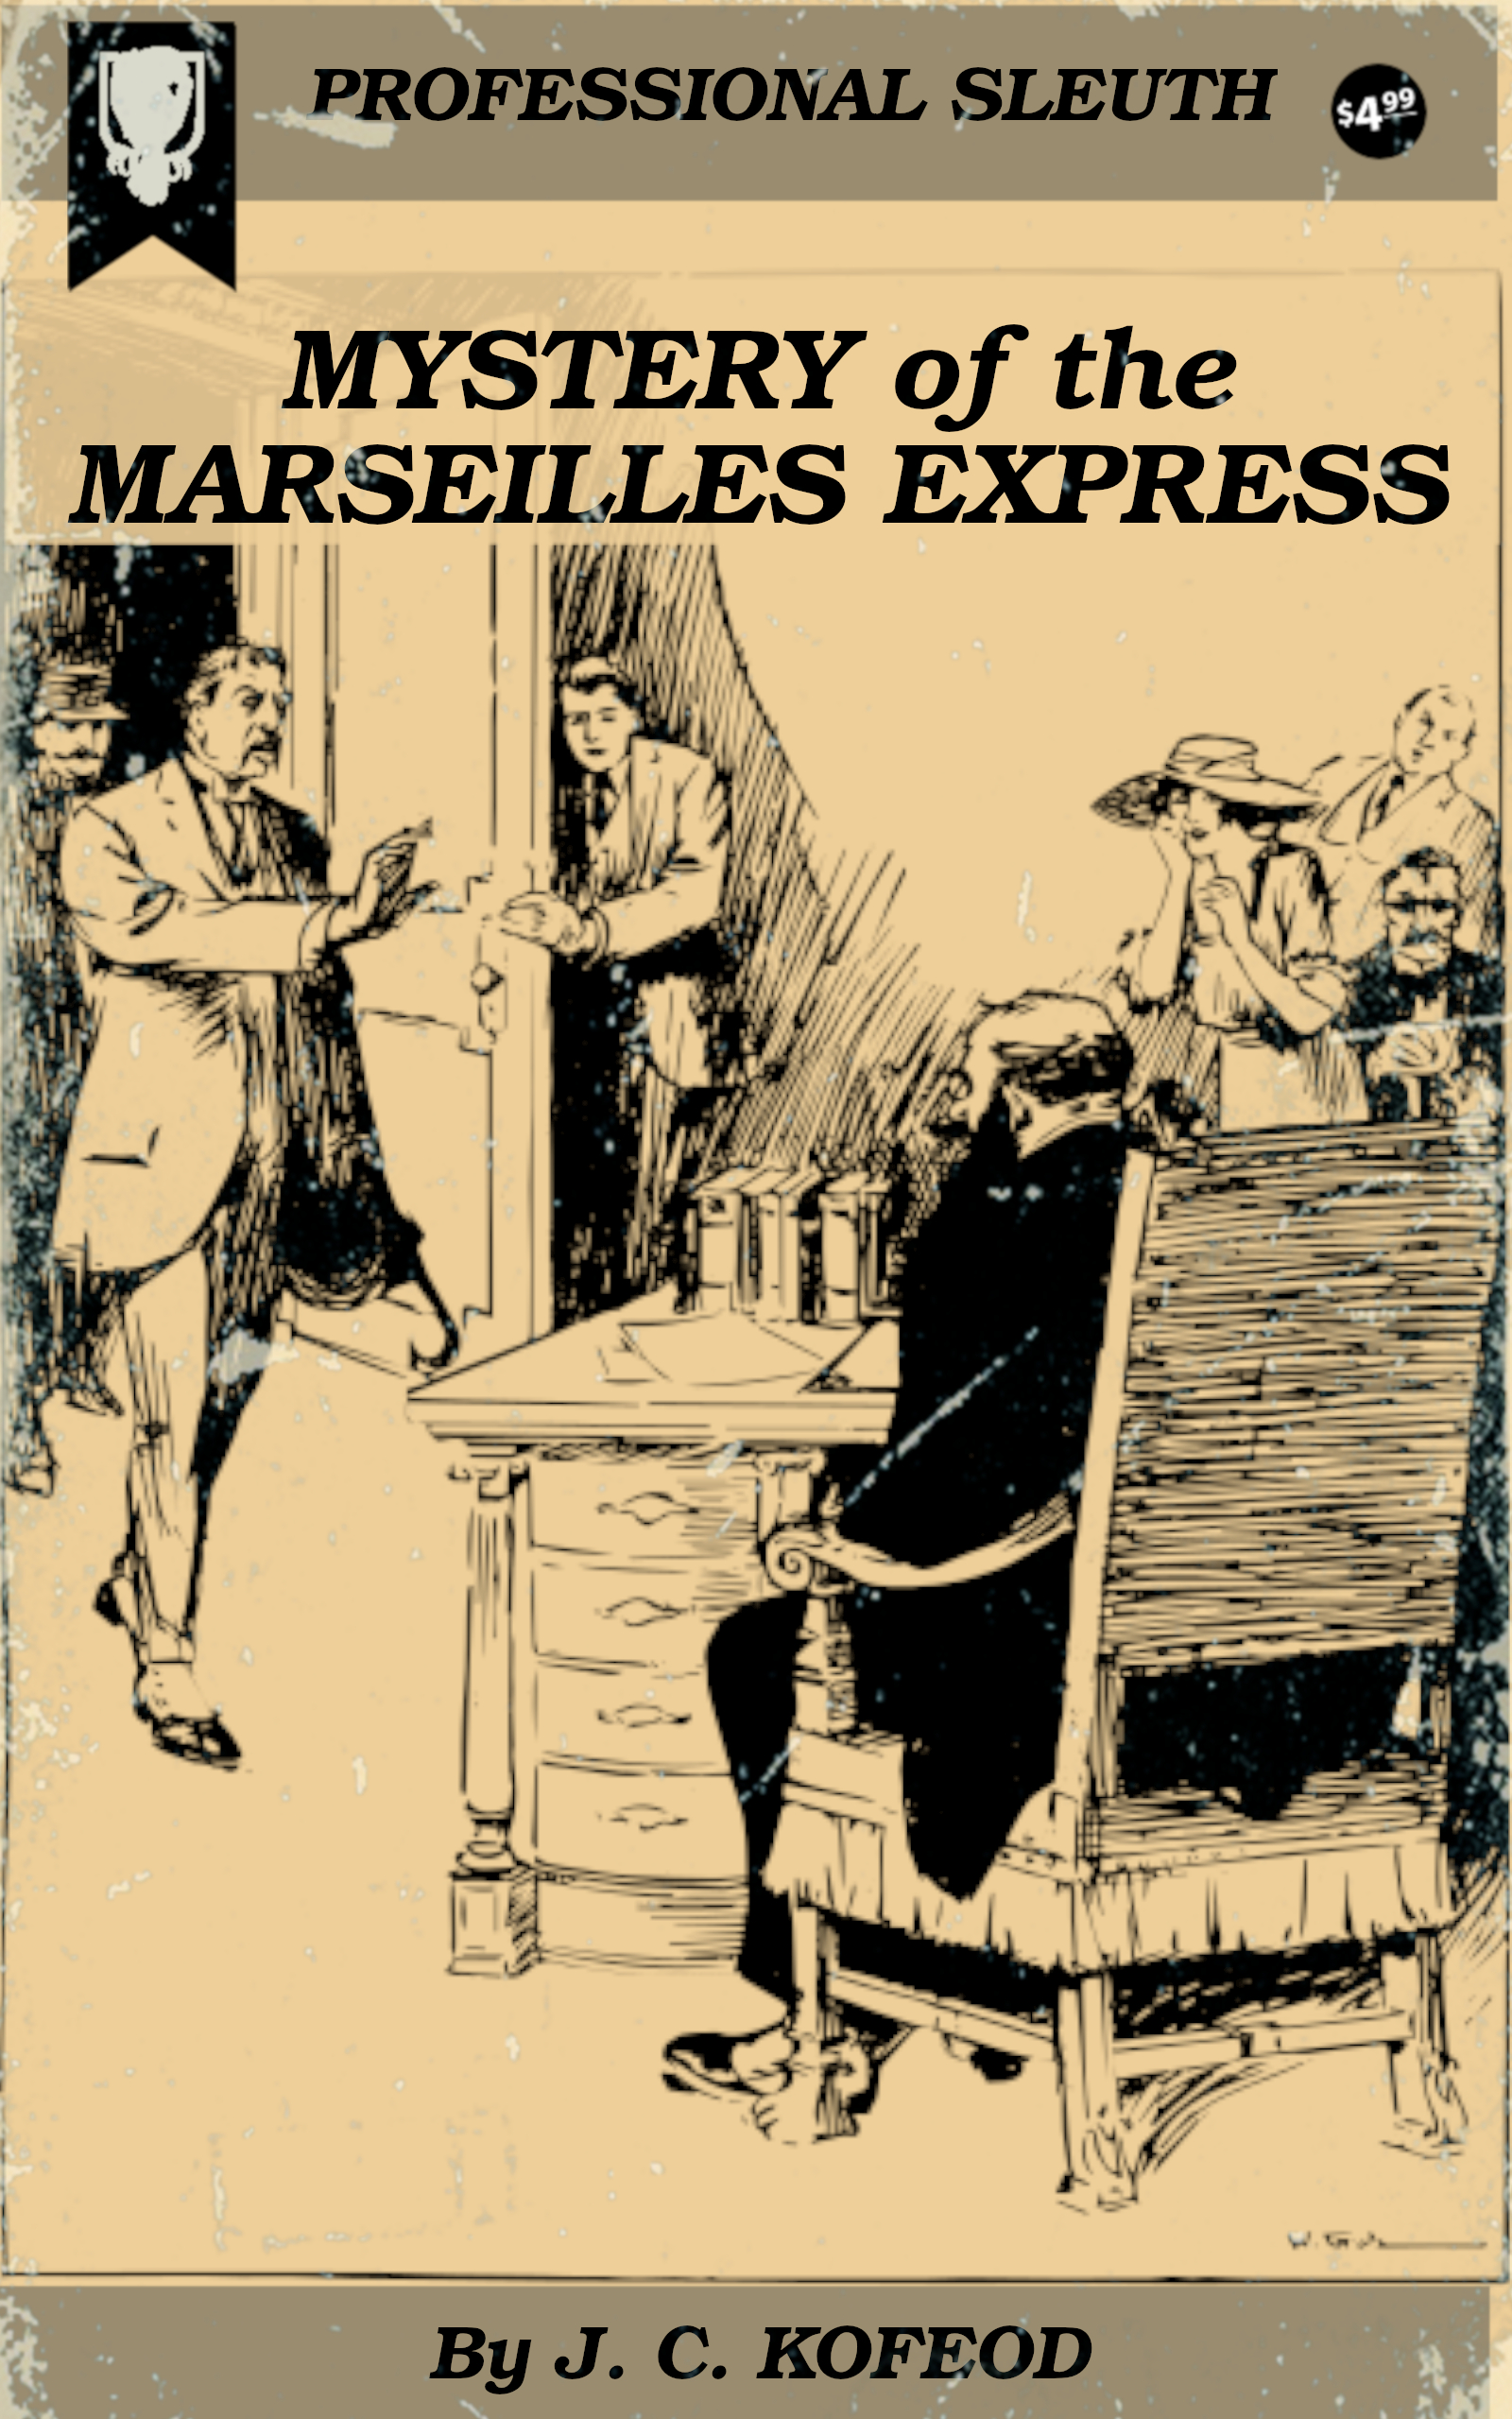 The Mystery of the Marseilles Express by J. C. Kofoed